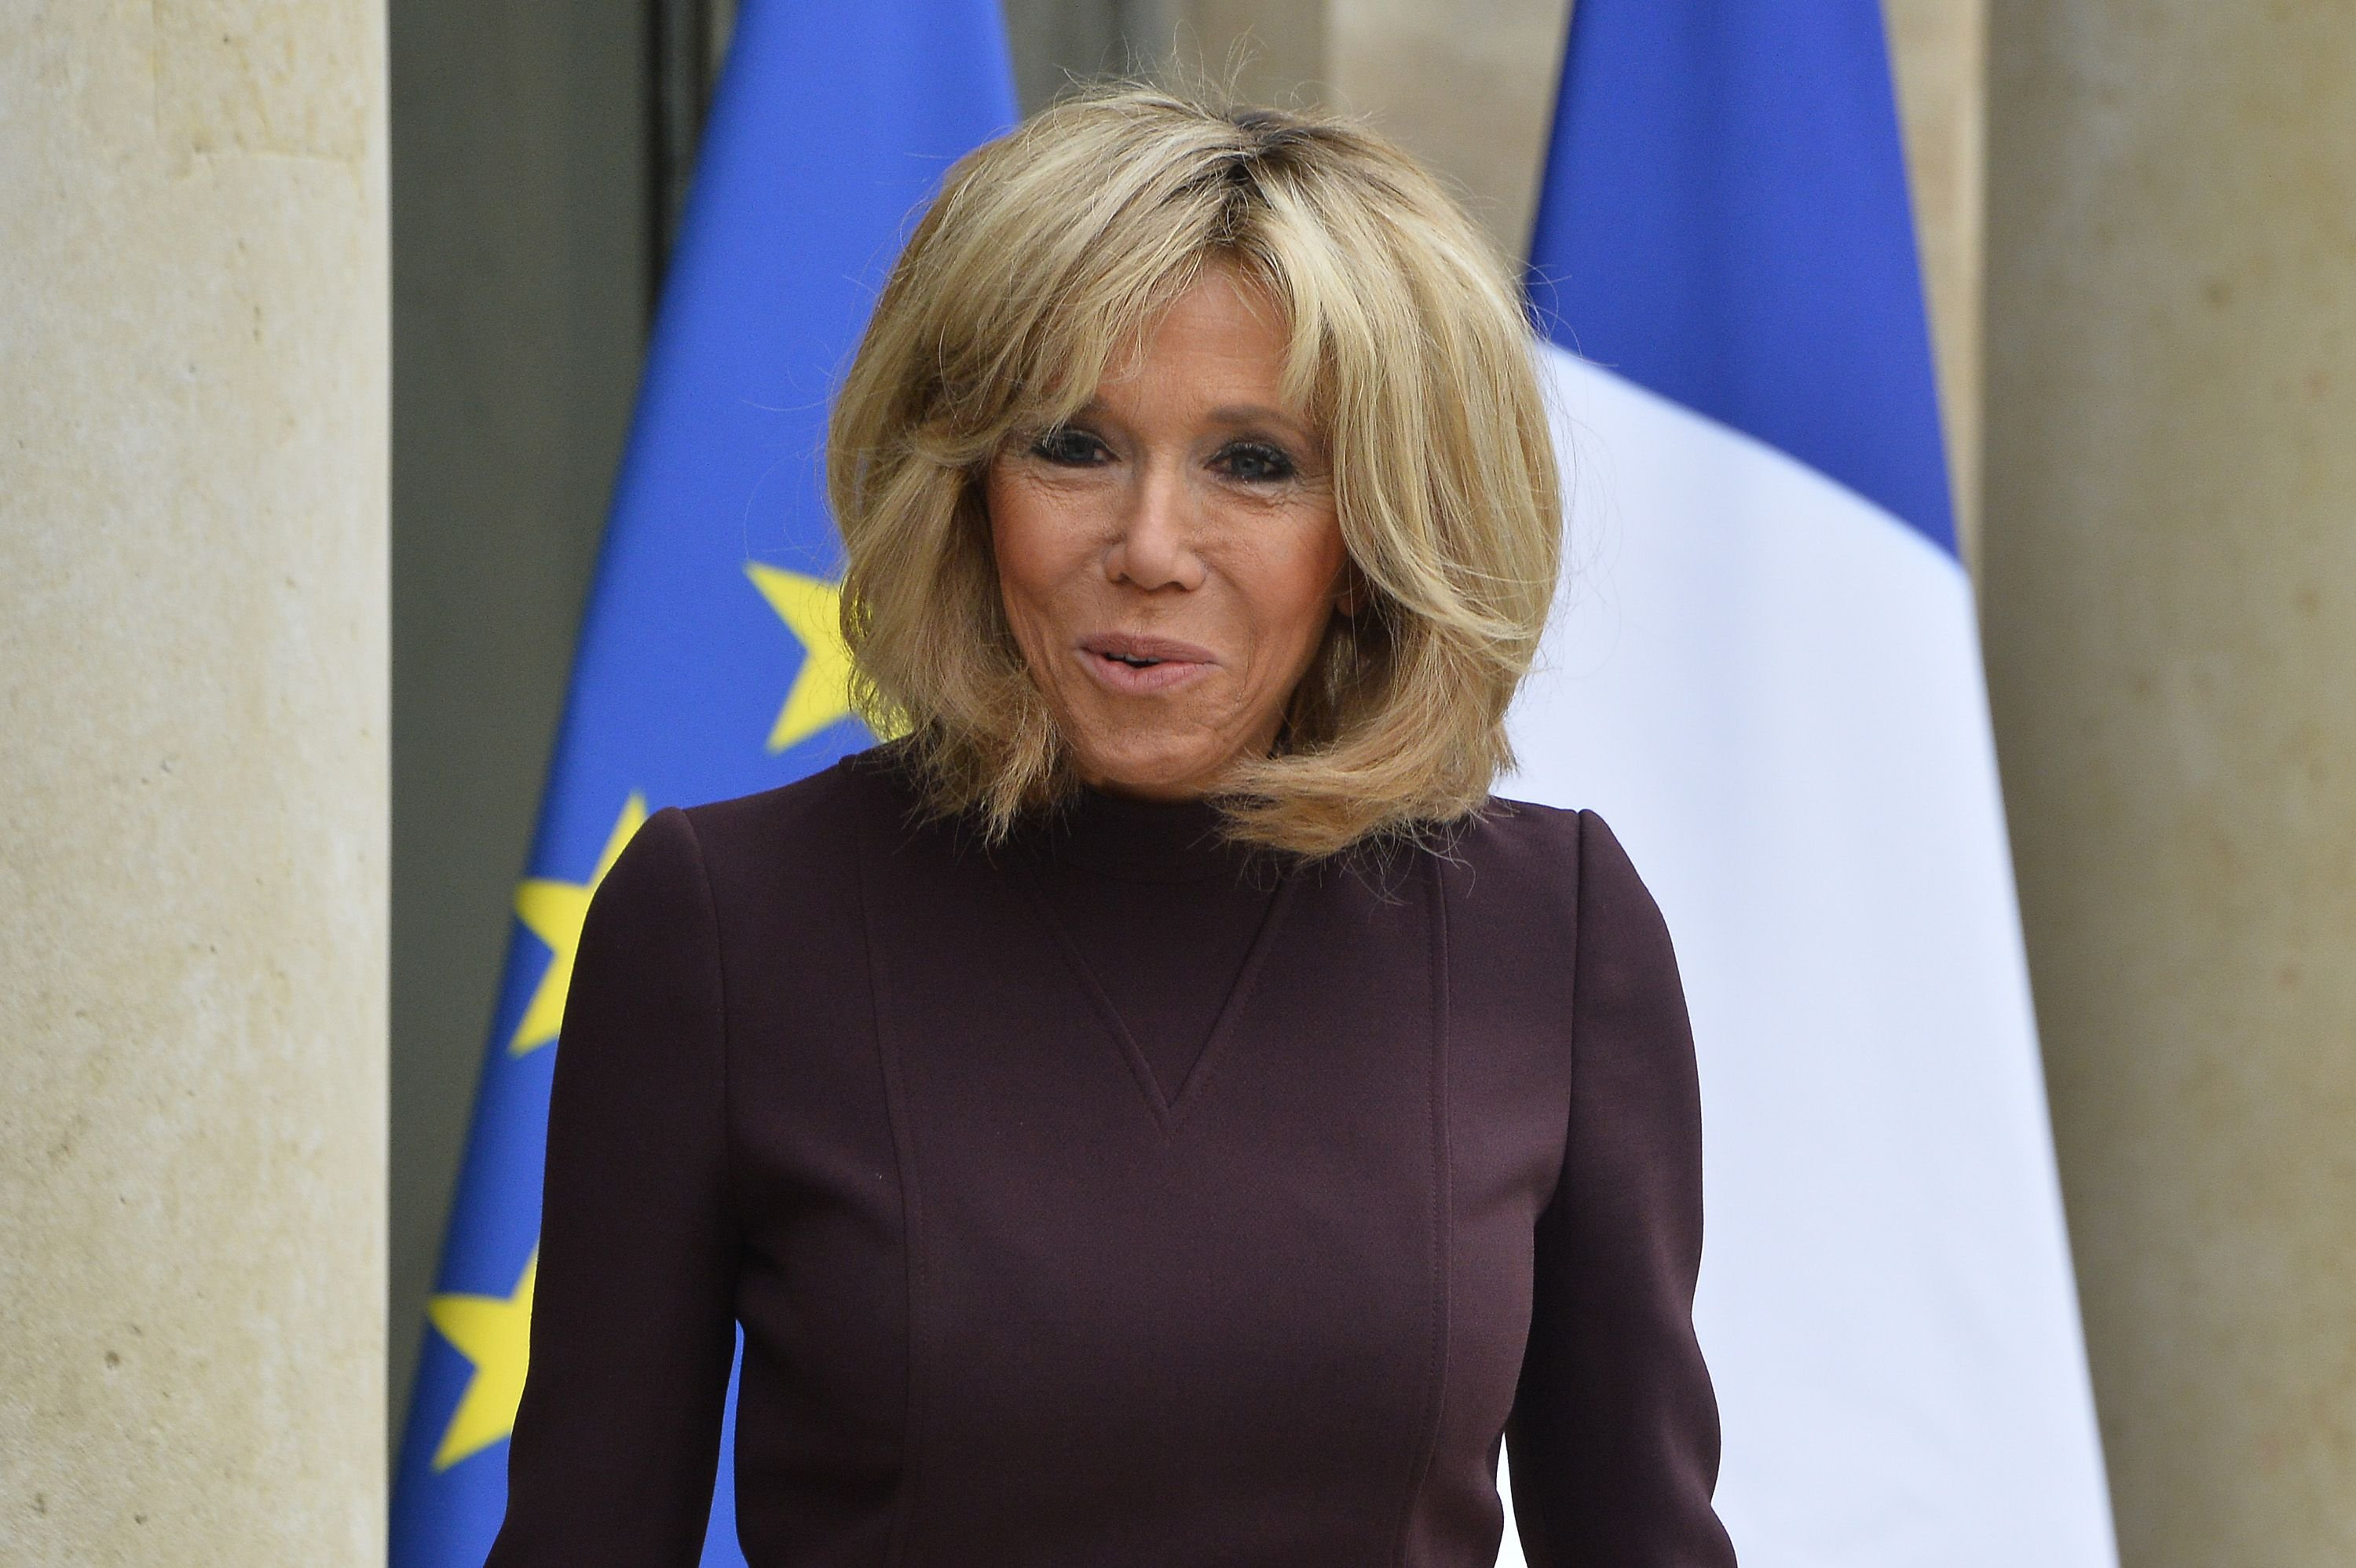 Brigitte Macron quitte l'Elysée le 18 novembre 2017 à Paris, en France. | Photo : Getty Images